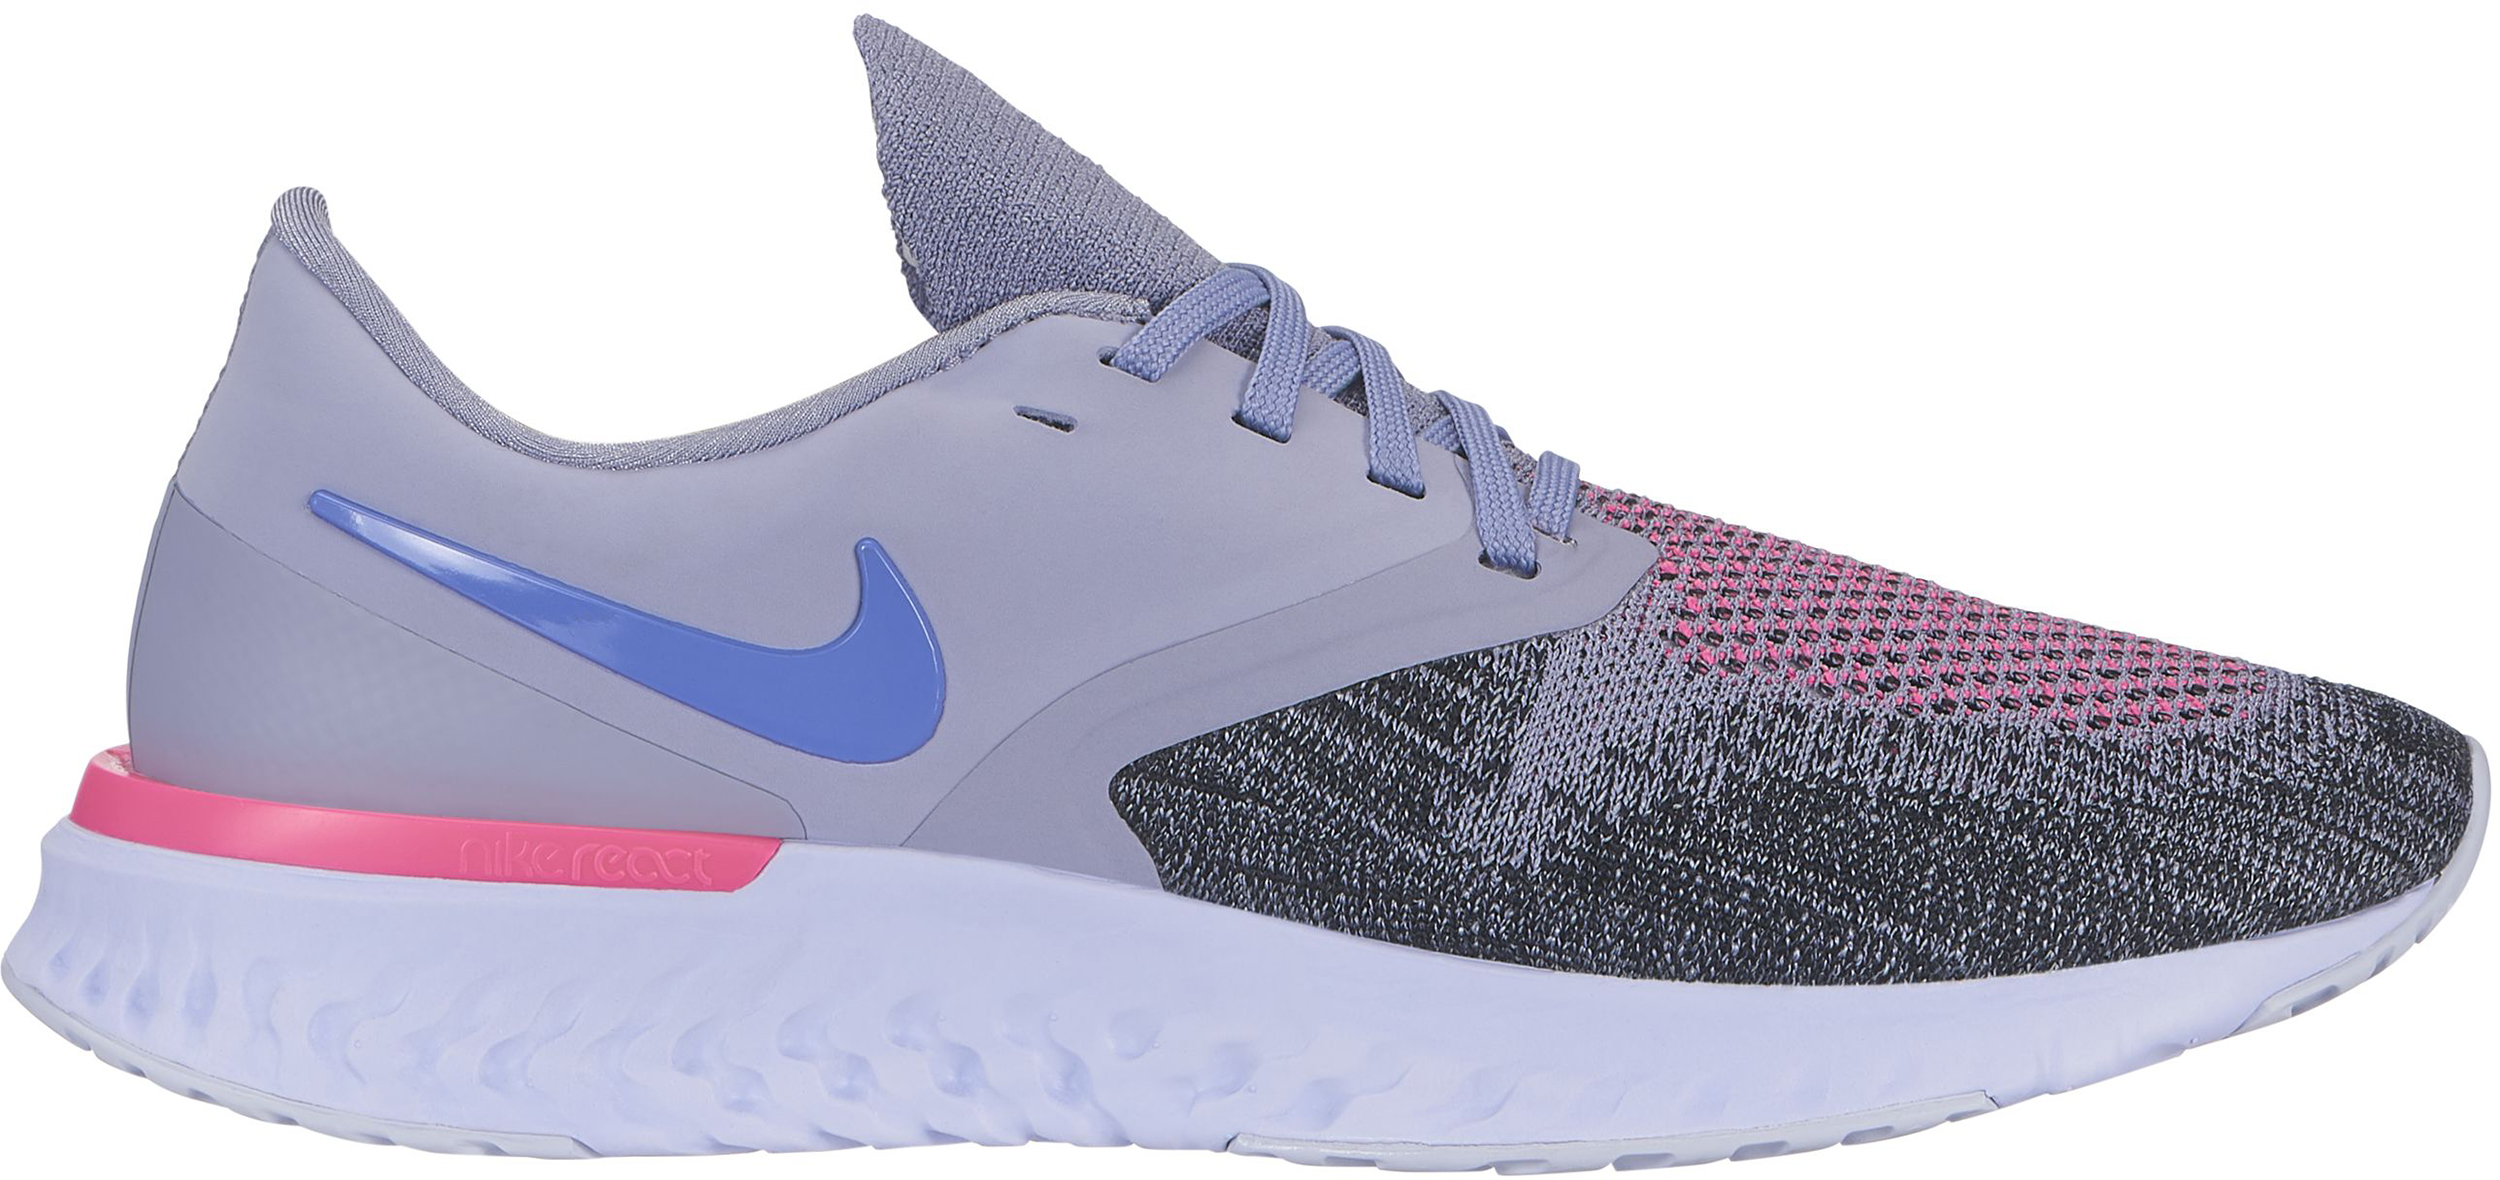 the latest 72d98 602f1 Nike Odyssey React Flyknit 2 Road Running Shoes - Women's